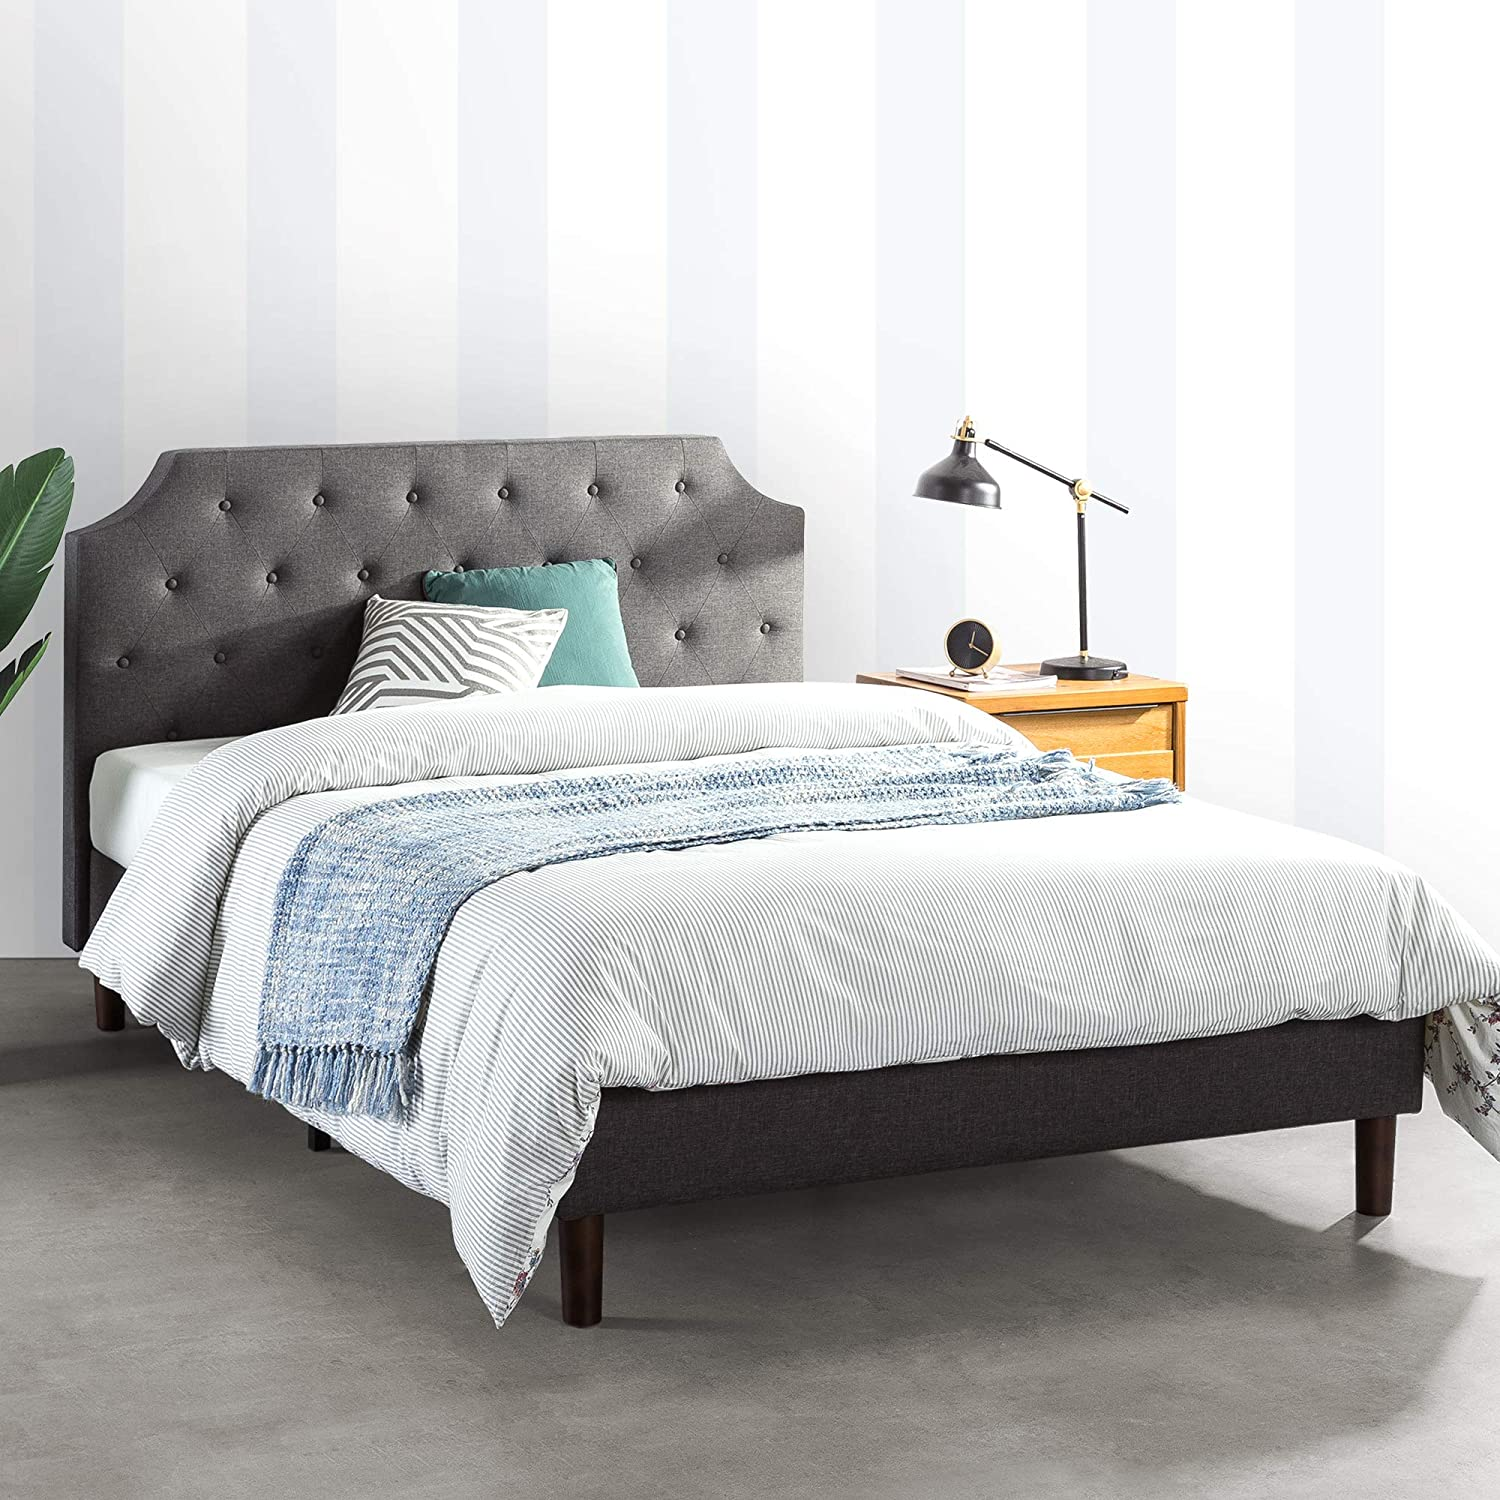 Amazon Com Mellow Mavn Upholstered Platform Bed Modern Tufted Headboard Real Wooden Slats And Legs Dark Grey King Kitchen Dining